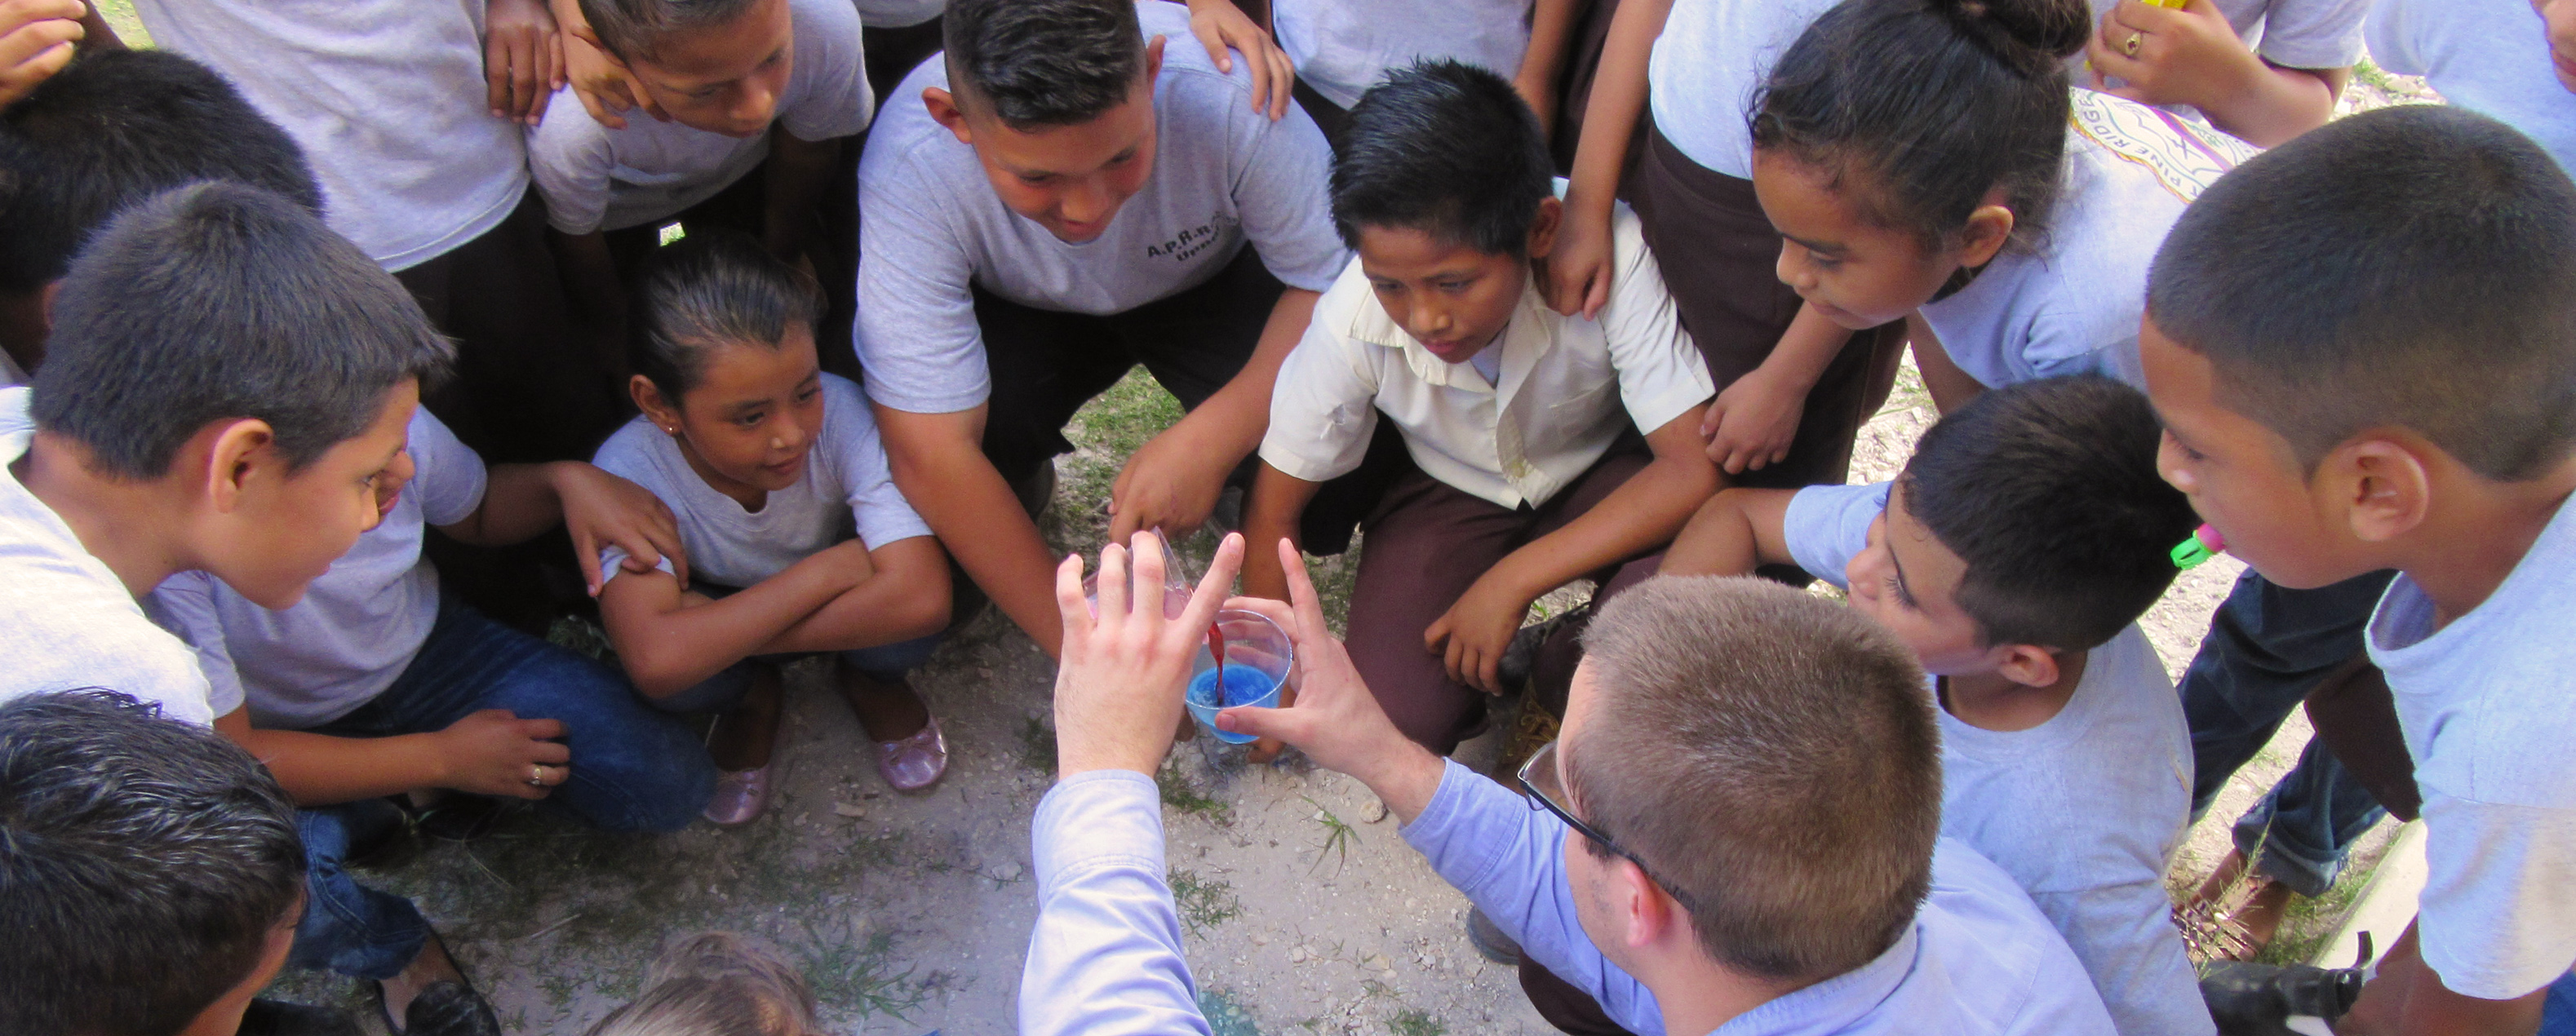 14 kids of varying ages gathered in a circle around a young man who is holding a cup filled with blue liquid.